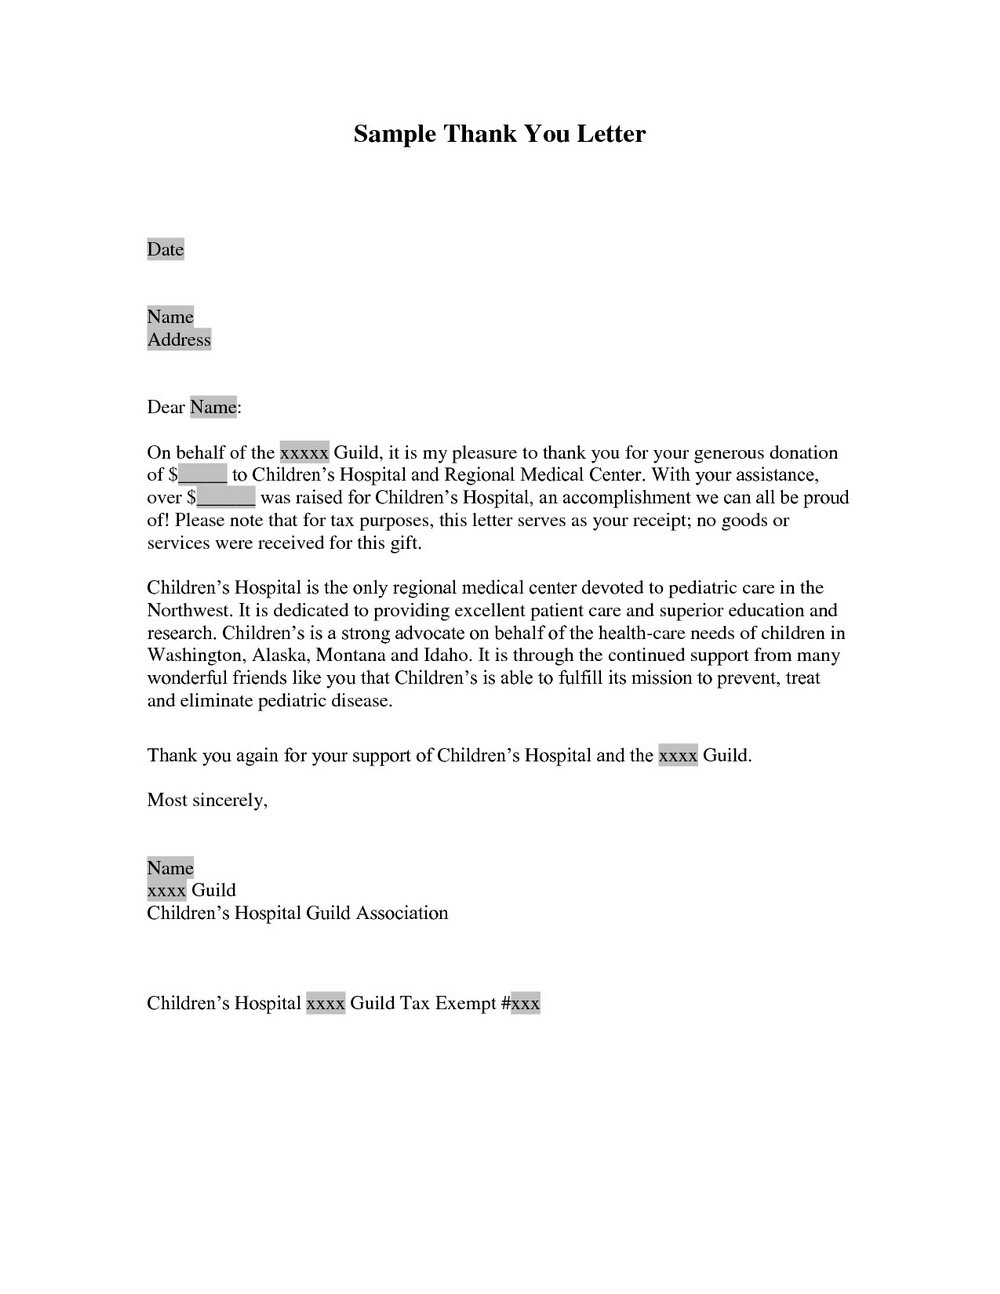 Charitable Donation Thank You Letter Template